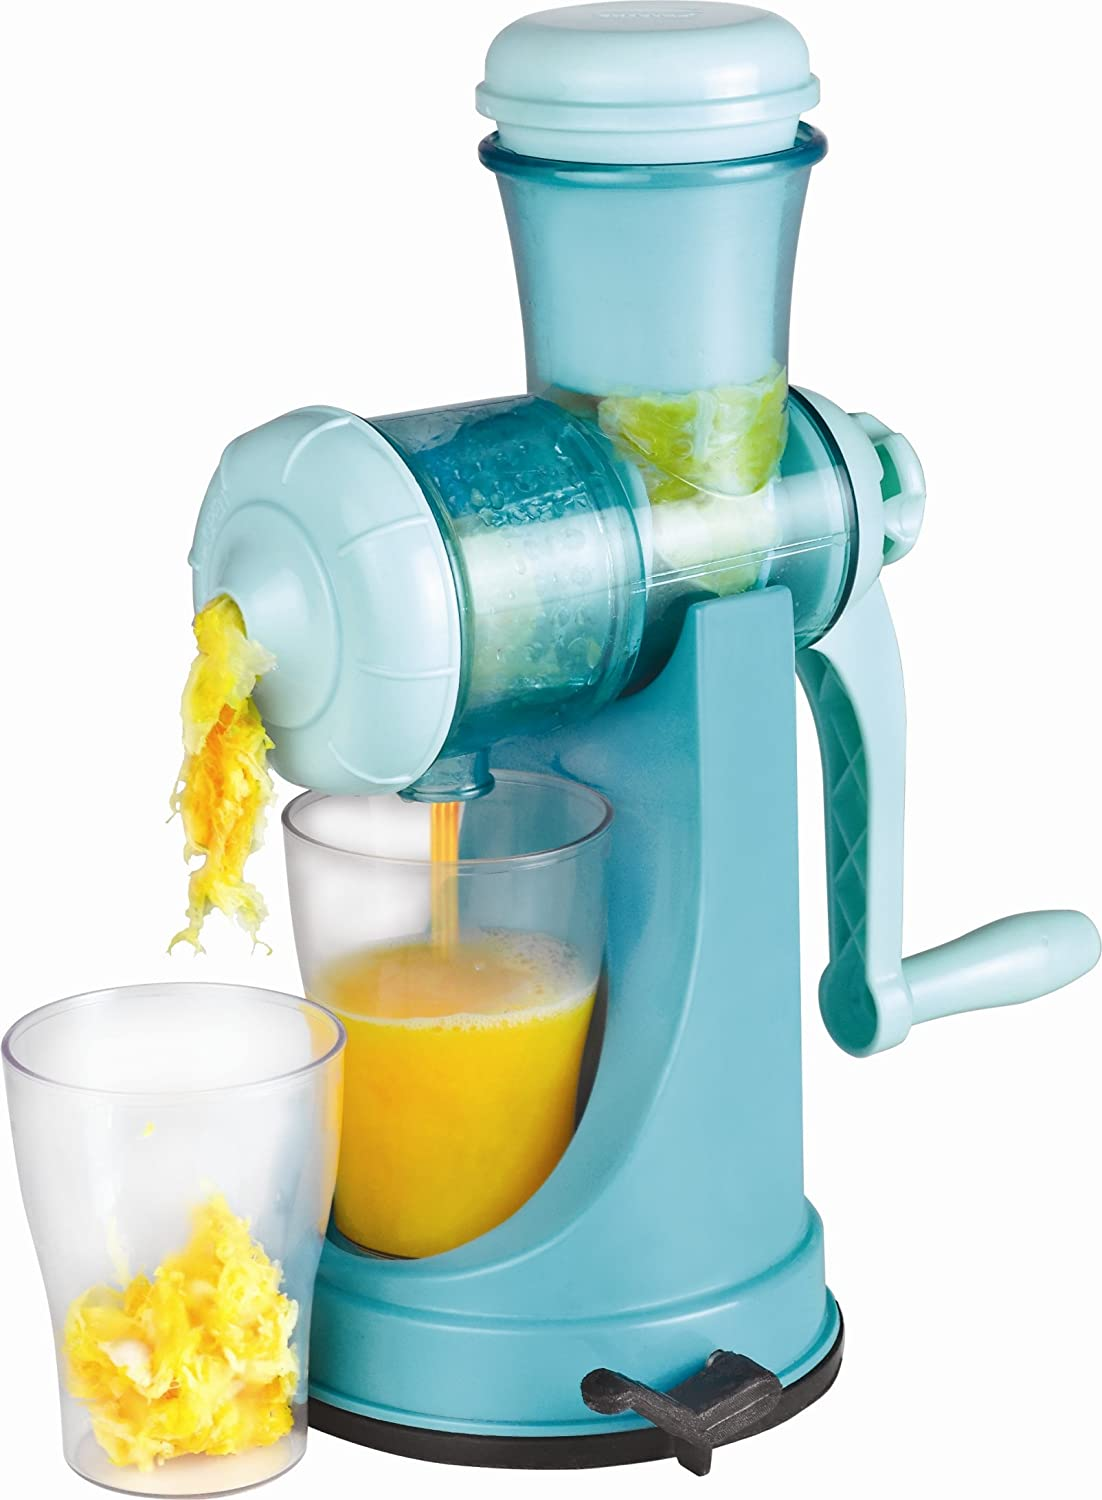 Which Juicer Extracts The Most Juice ~ Juicer machine komfyr bruksanvisning